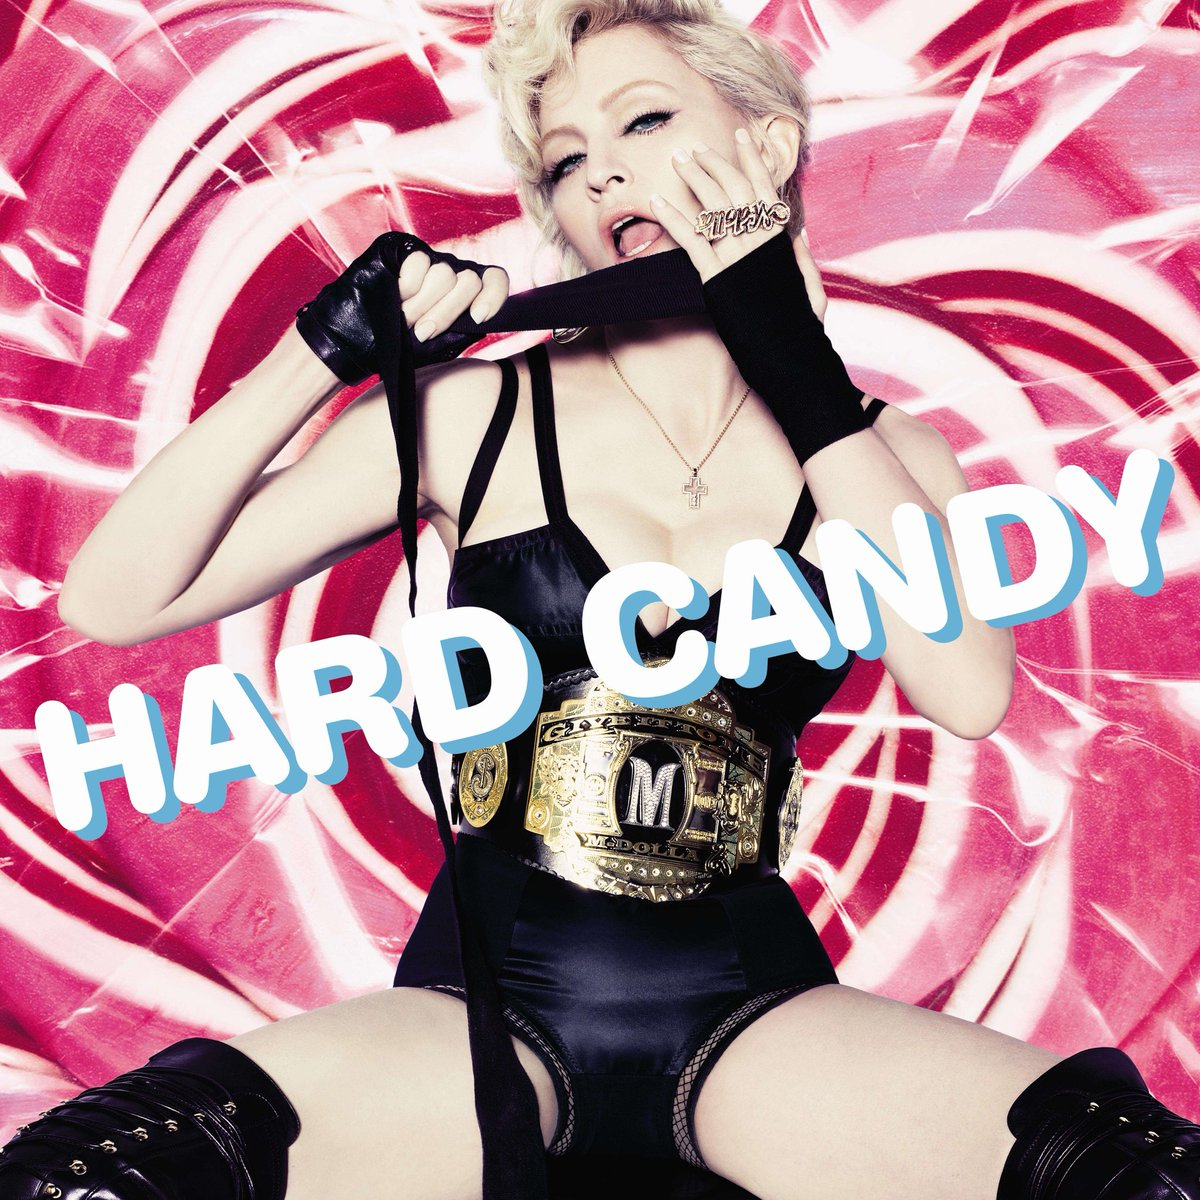 Happy 10th Anniversary #HardCandy !! Which song from the album is your favorite? Tell us in the comments below! https://t.co/Ckl4IfRE08